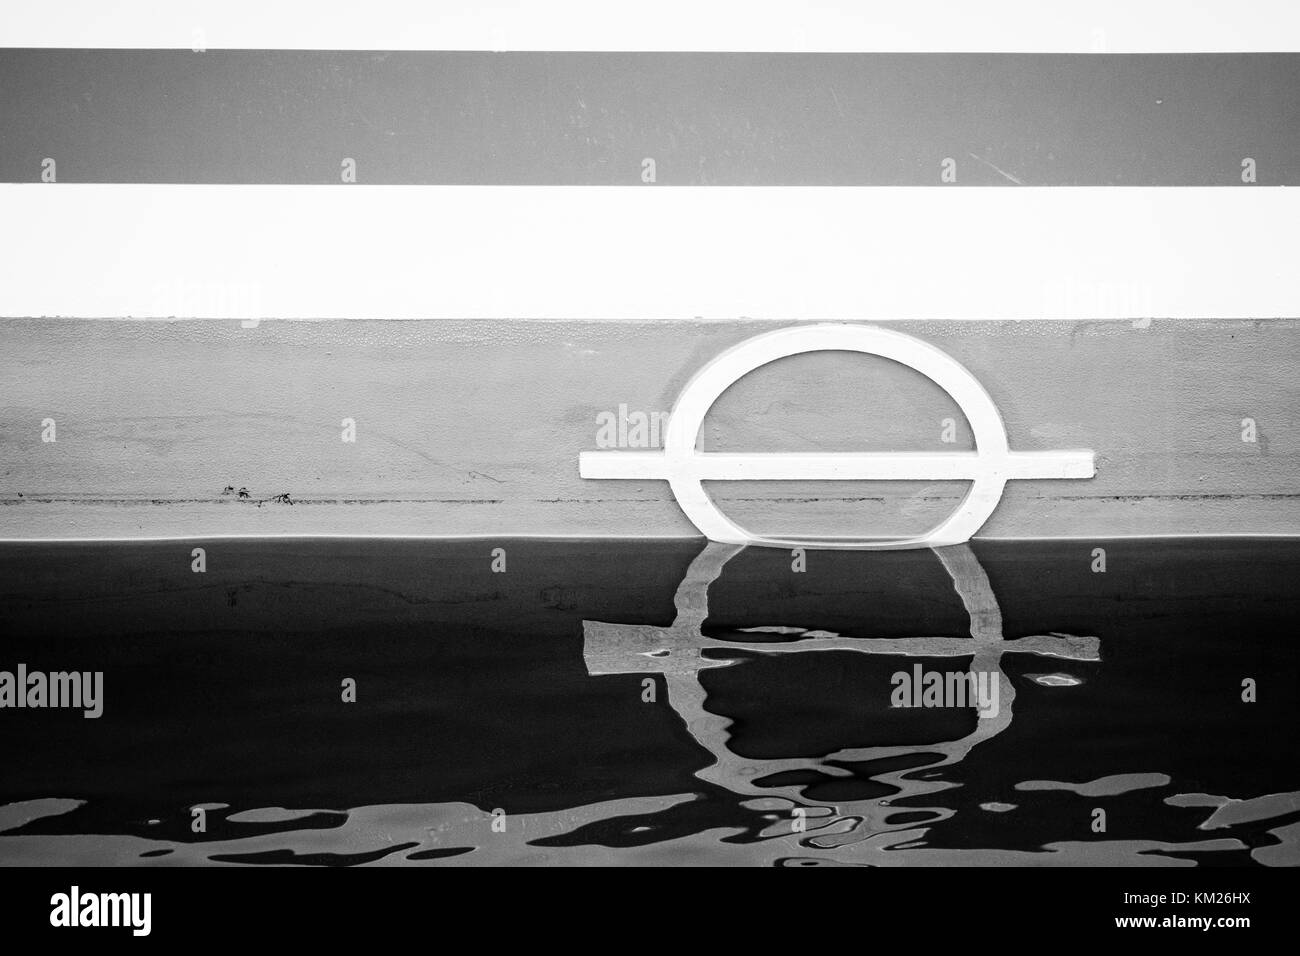 Plimsoll marking on the waterline of a ship. - Stock Image